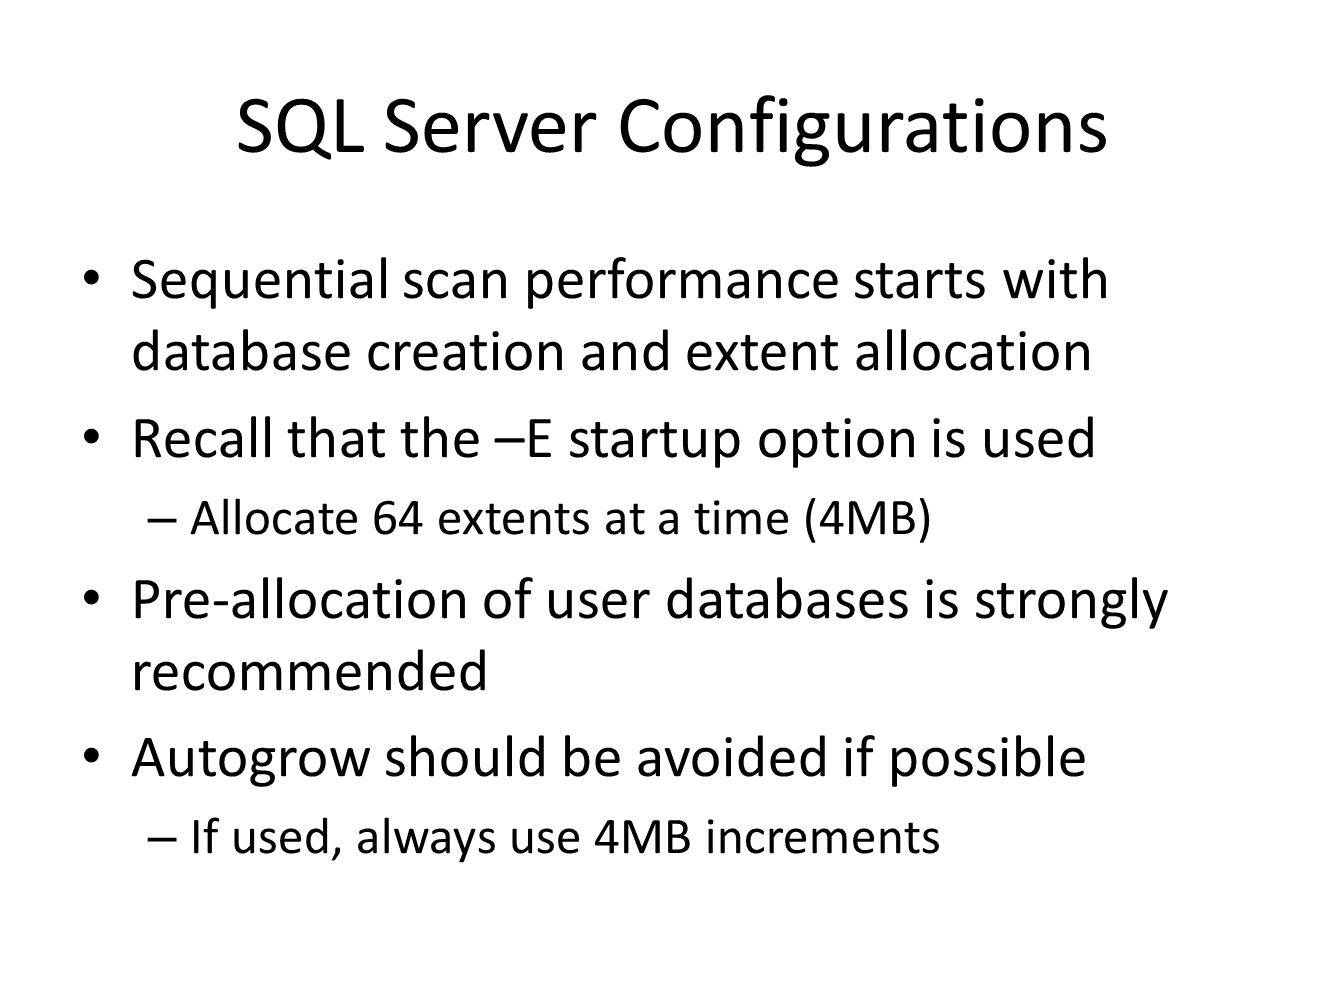 SQL Server Configurations Sequential scan performance starts with database creation and extent allocation Recall that the –E startup option is used – Allocate 64 extents at a time (4MB) Pre-allocation of user databases is strongly recommended Autogrow should be avoided if possible – If used, always use 4MB increments